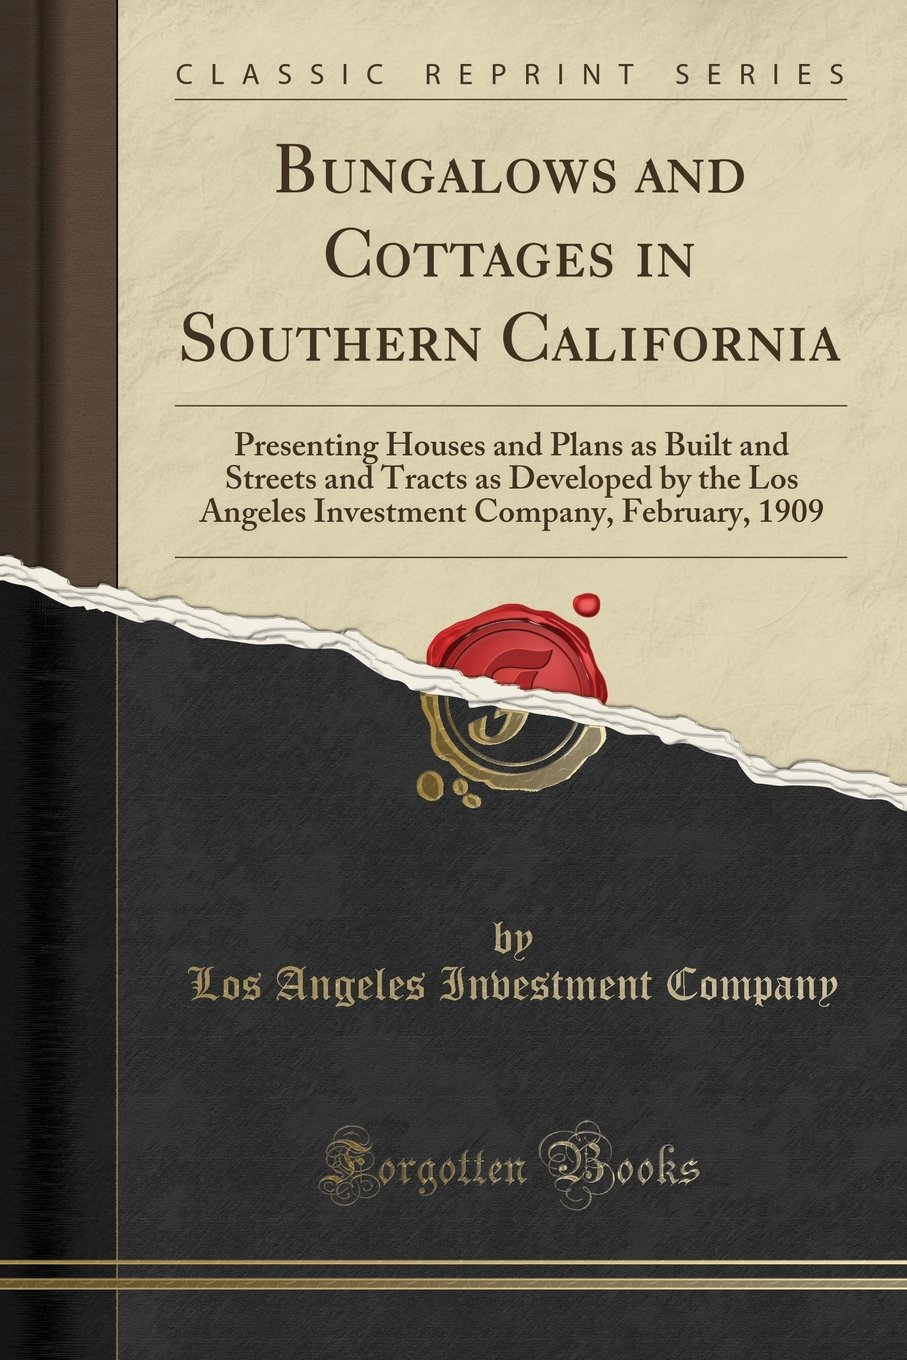 Bungalows and Cottages in Southern California: Presenting Houses and Plans as Built and Streets and Tracts as Developed by the Los Angeles Investment Company, February, 1909 (Classic Reprint) pdf epub